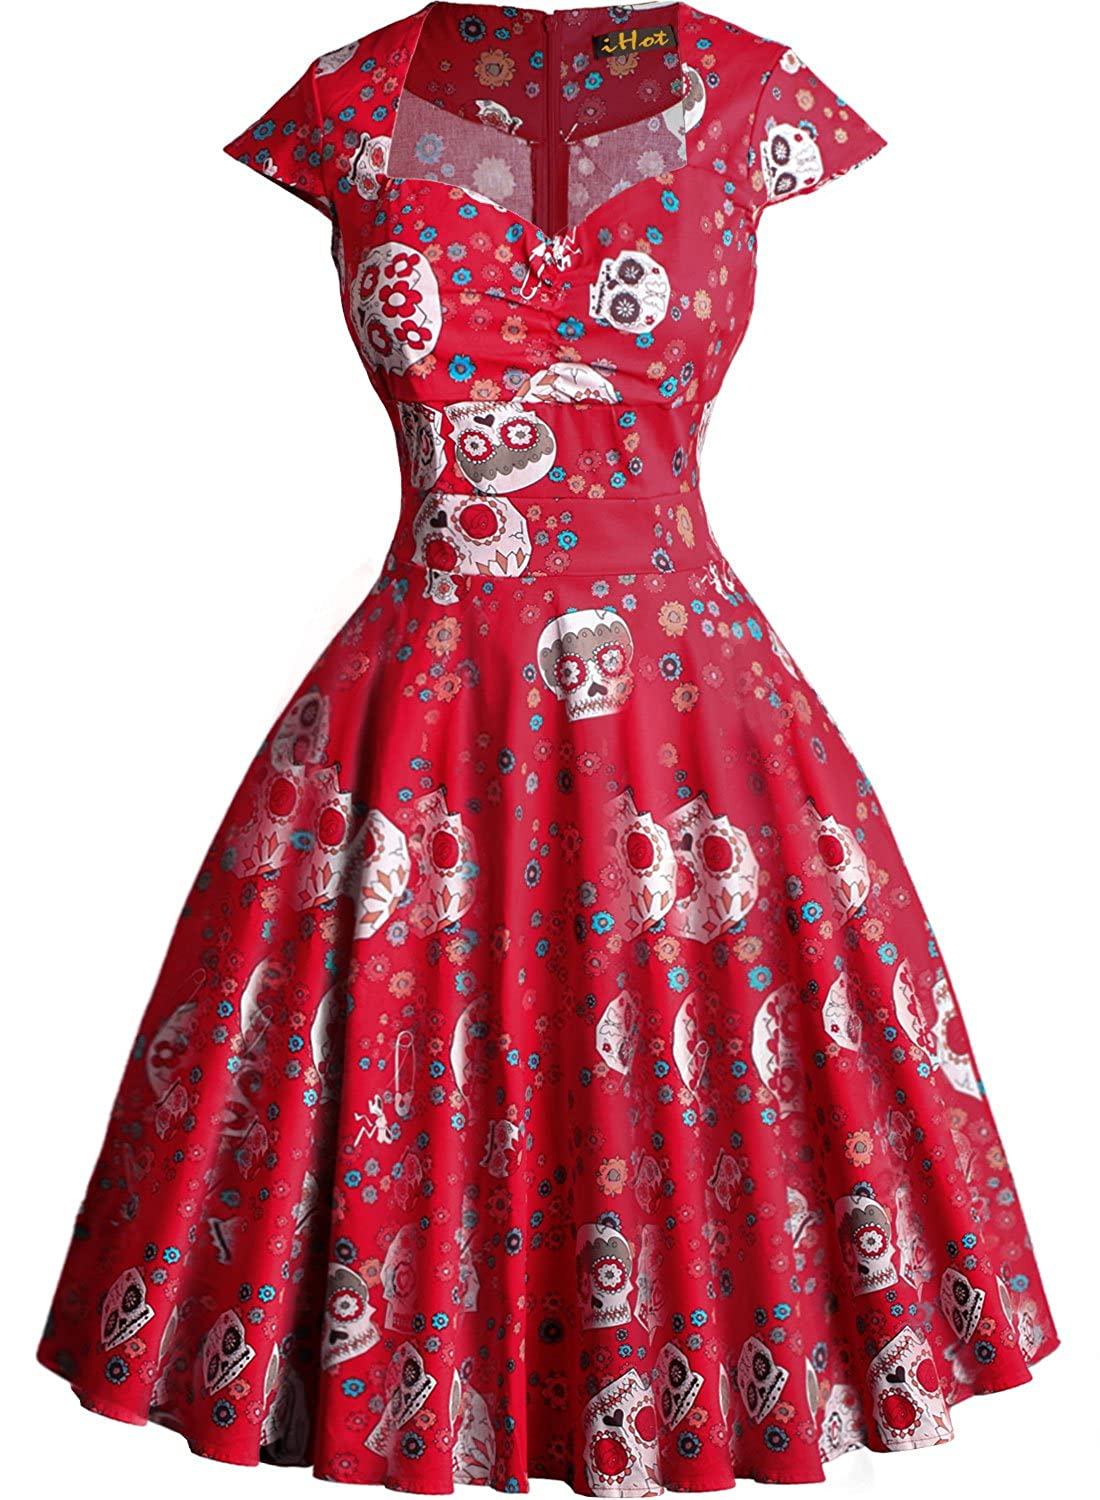 Womens Vintage Dress Skulls Ball Gown Evening Party Halloween